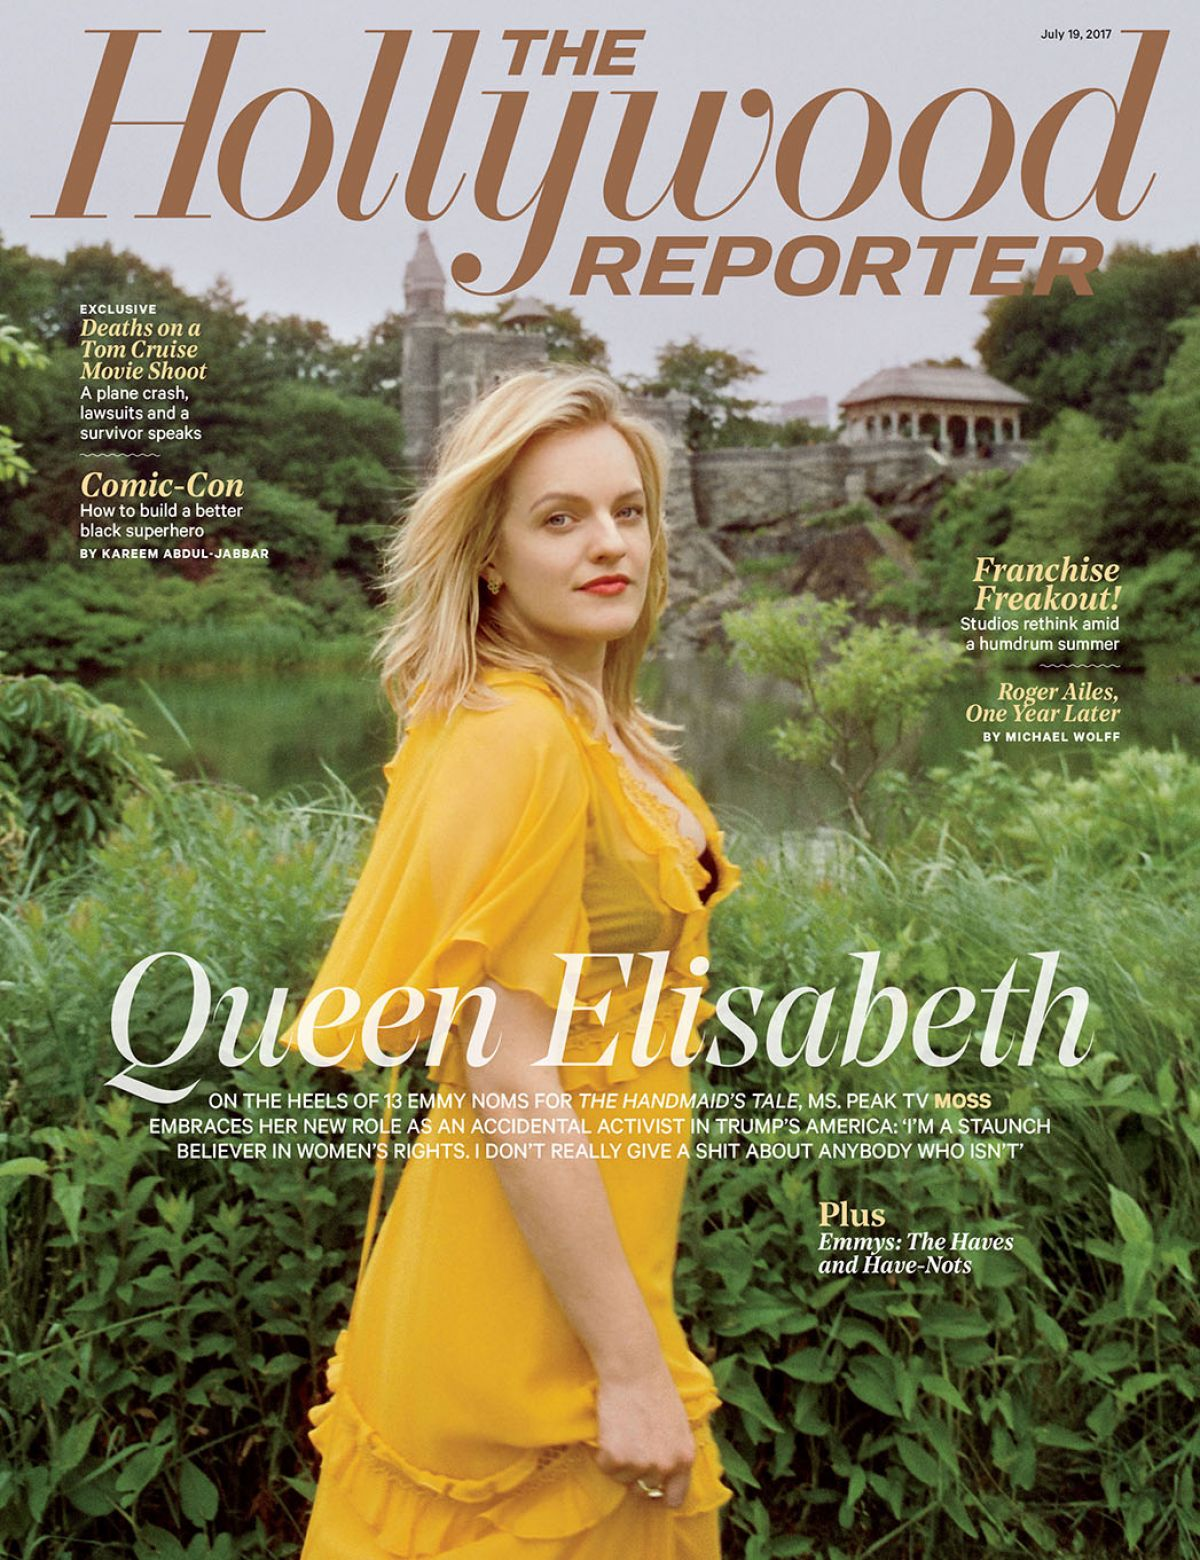 ELISABETH MOSS for The Hollywood Reporter, July 2017